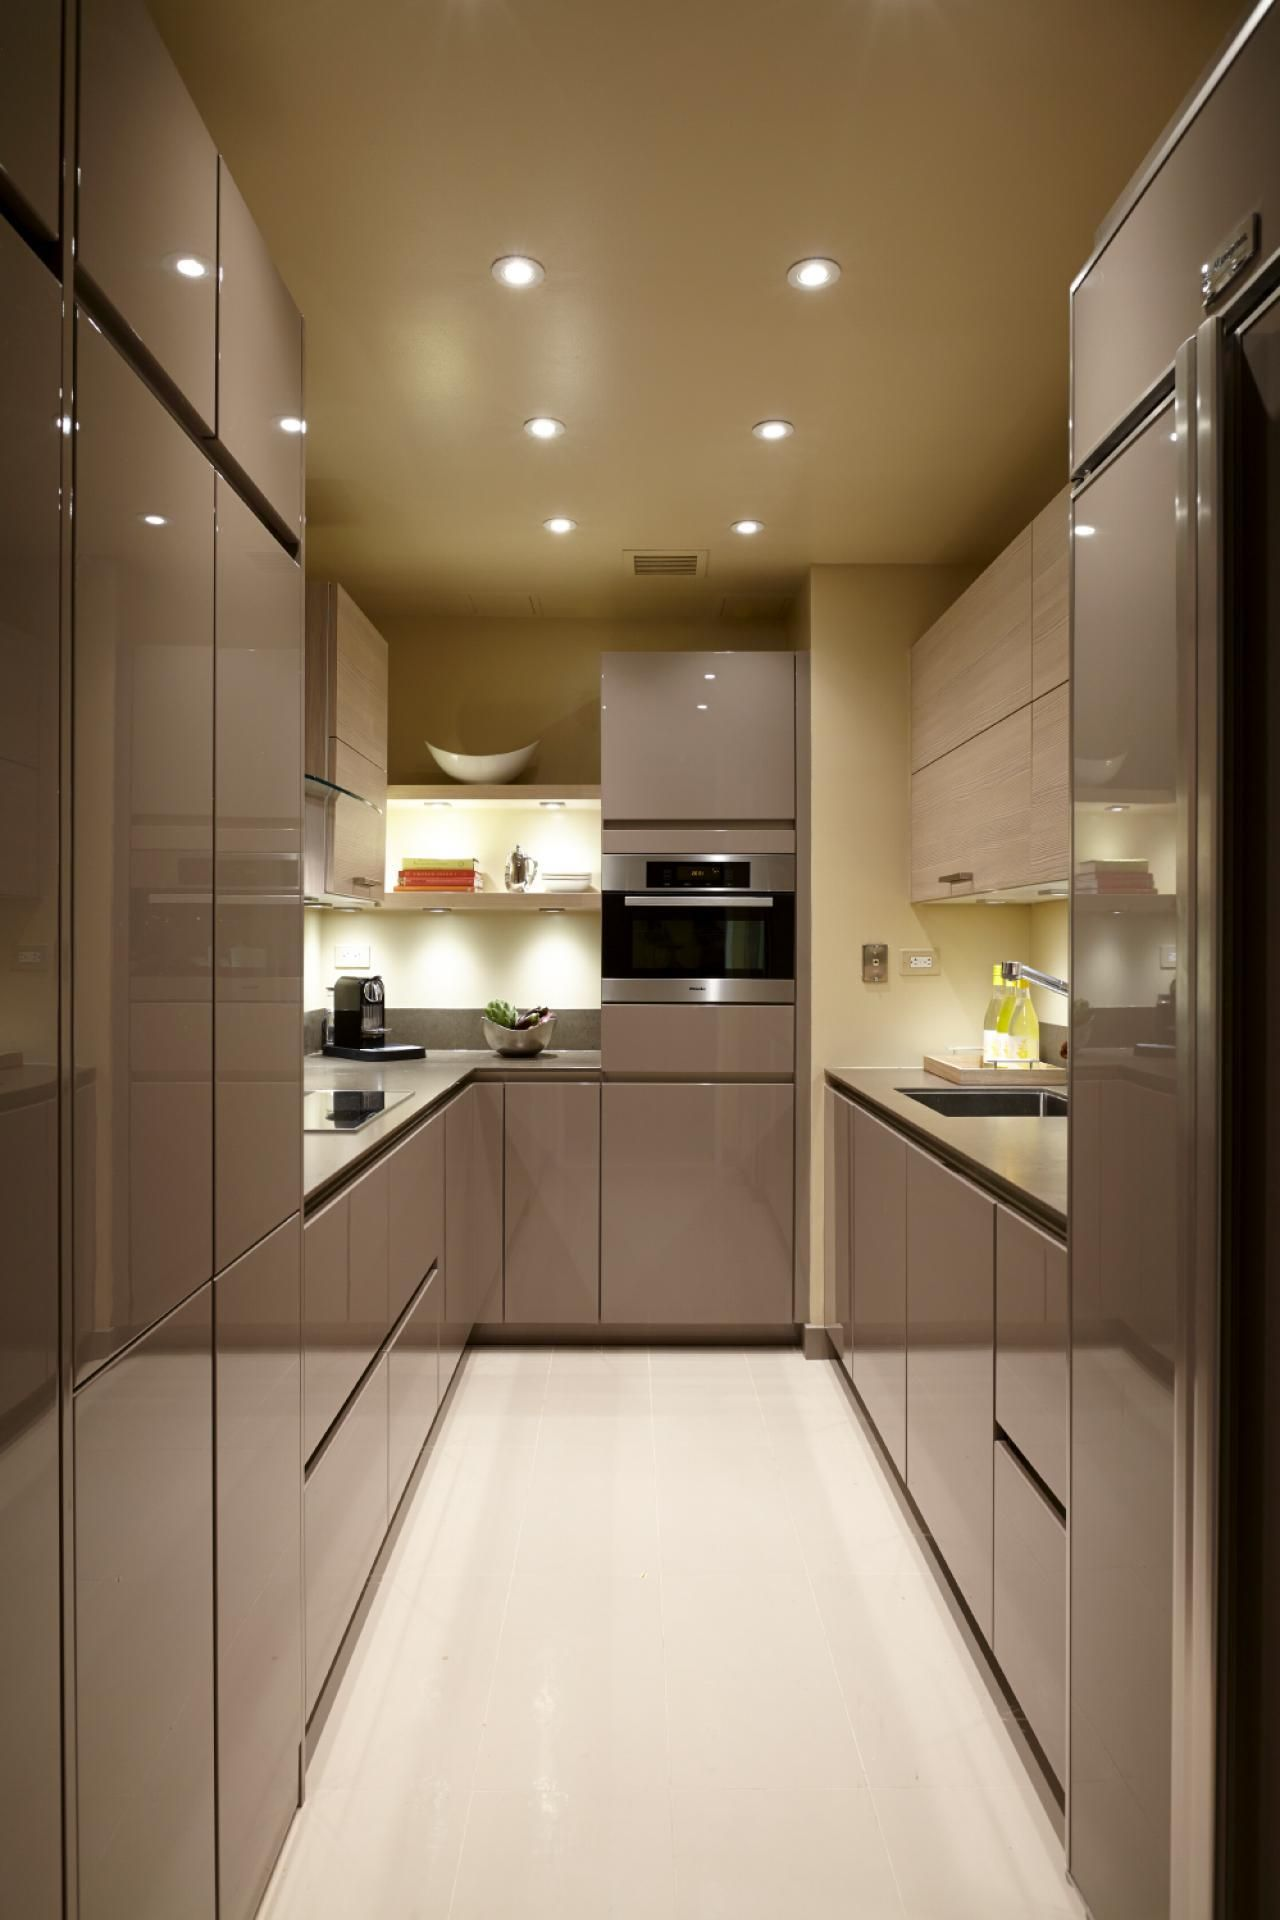 Small Kitchen Remodel Ideas Shining And Maximal Fresh Look Small Modern Kitchens Kitchen Remodel Small Modern Kitchen